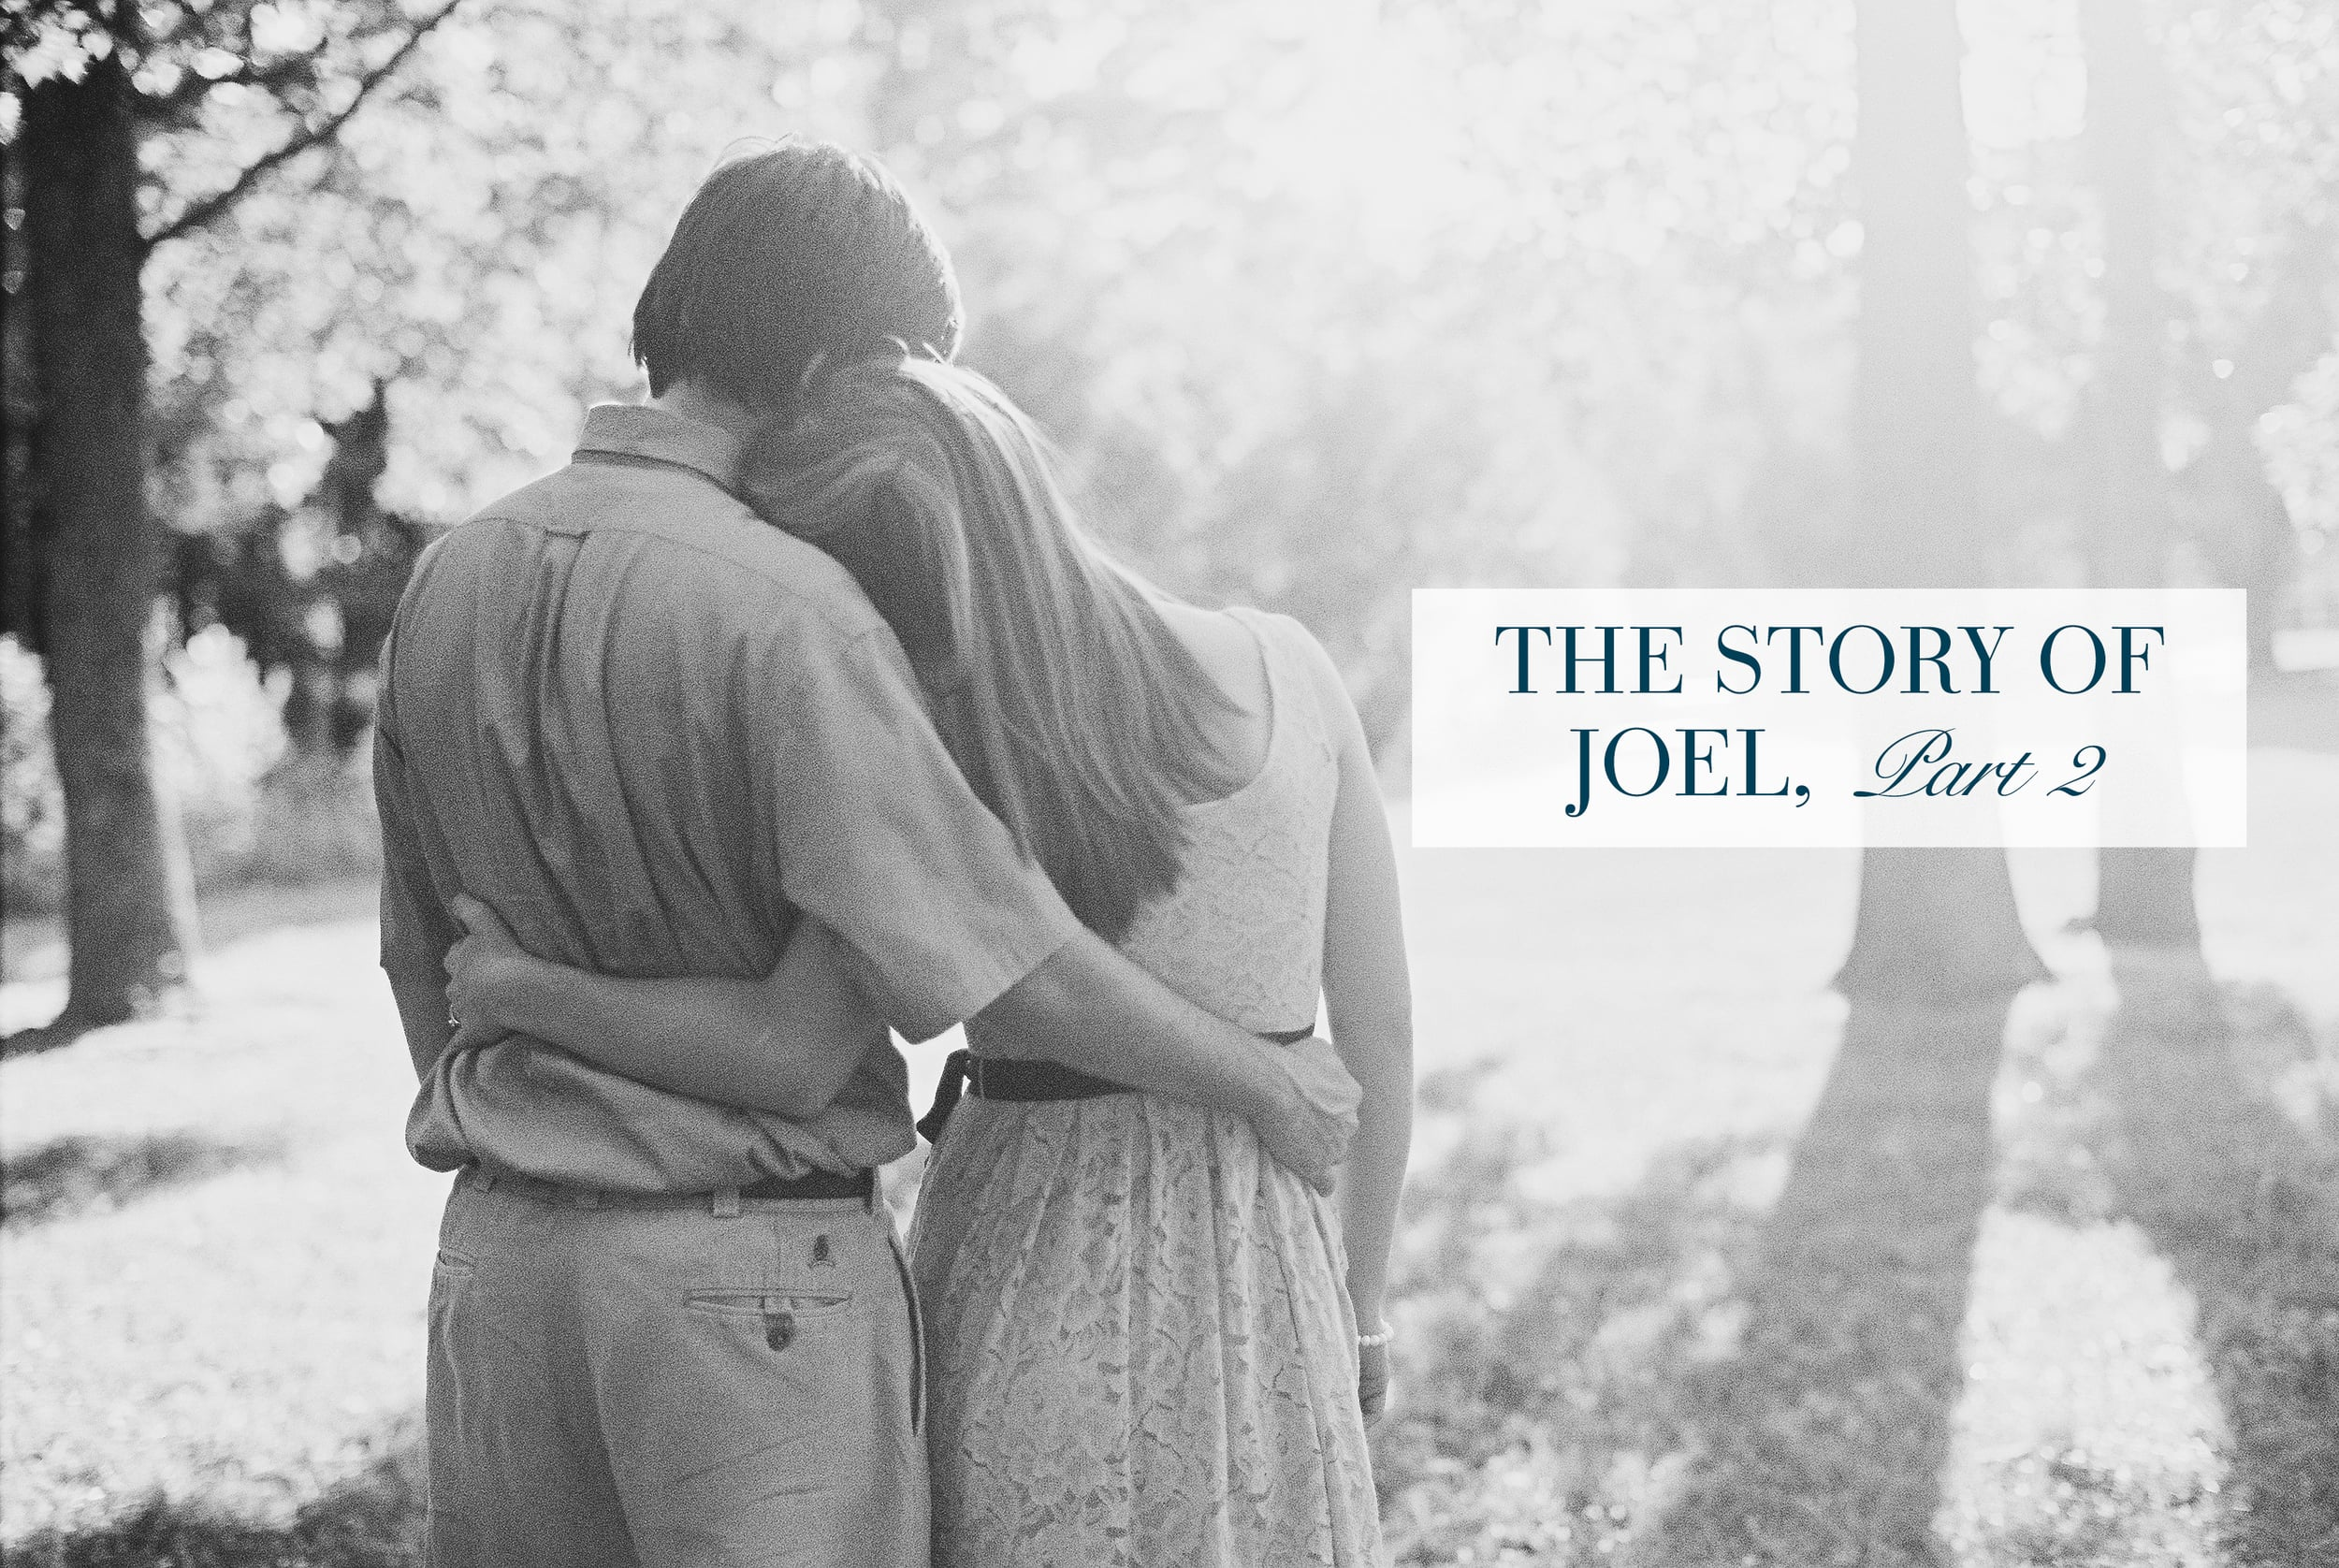 The Story of Joel, Part 2